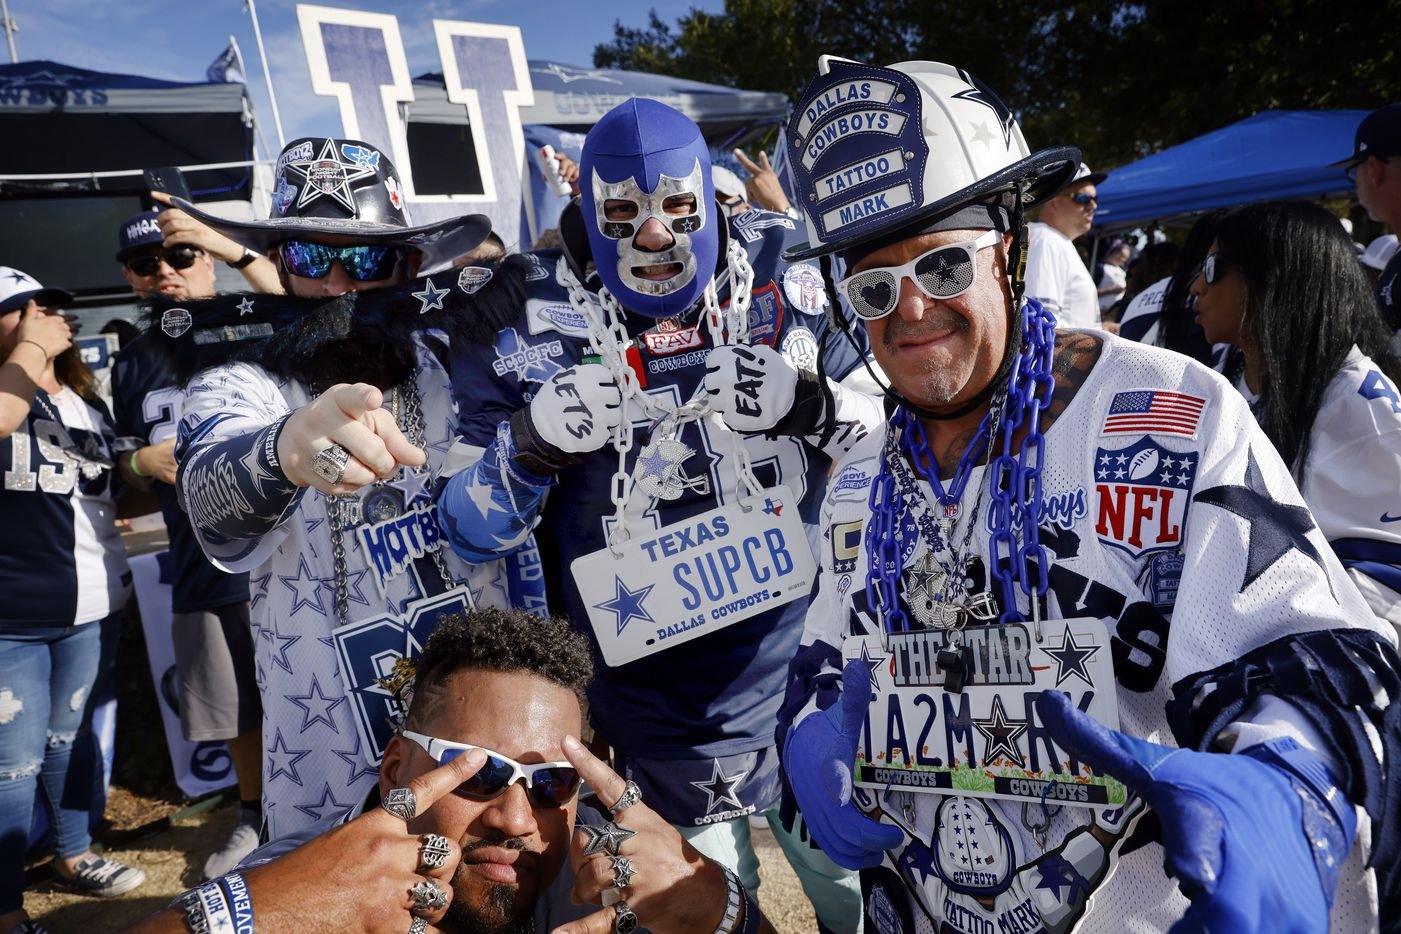 Dallas Cowboys super fans pose for a photo at a tailgate party before the Monday Night Football game at AT&T Stadium in Arlington, Monday, September 27, 2021. (Tom Fox/The Dallas Morning News)